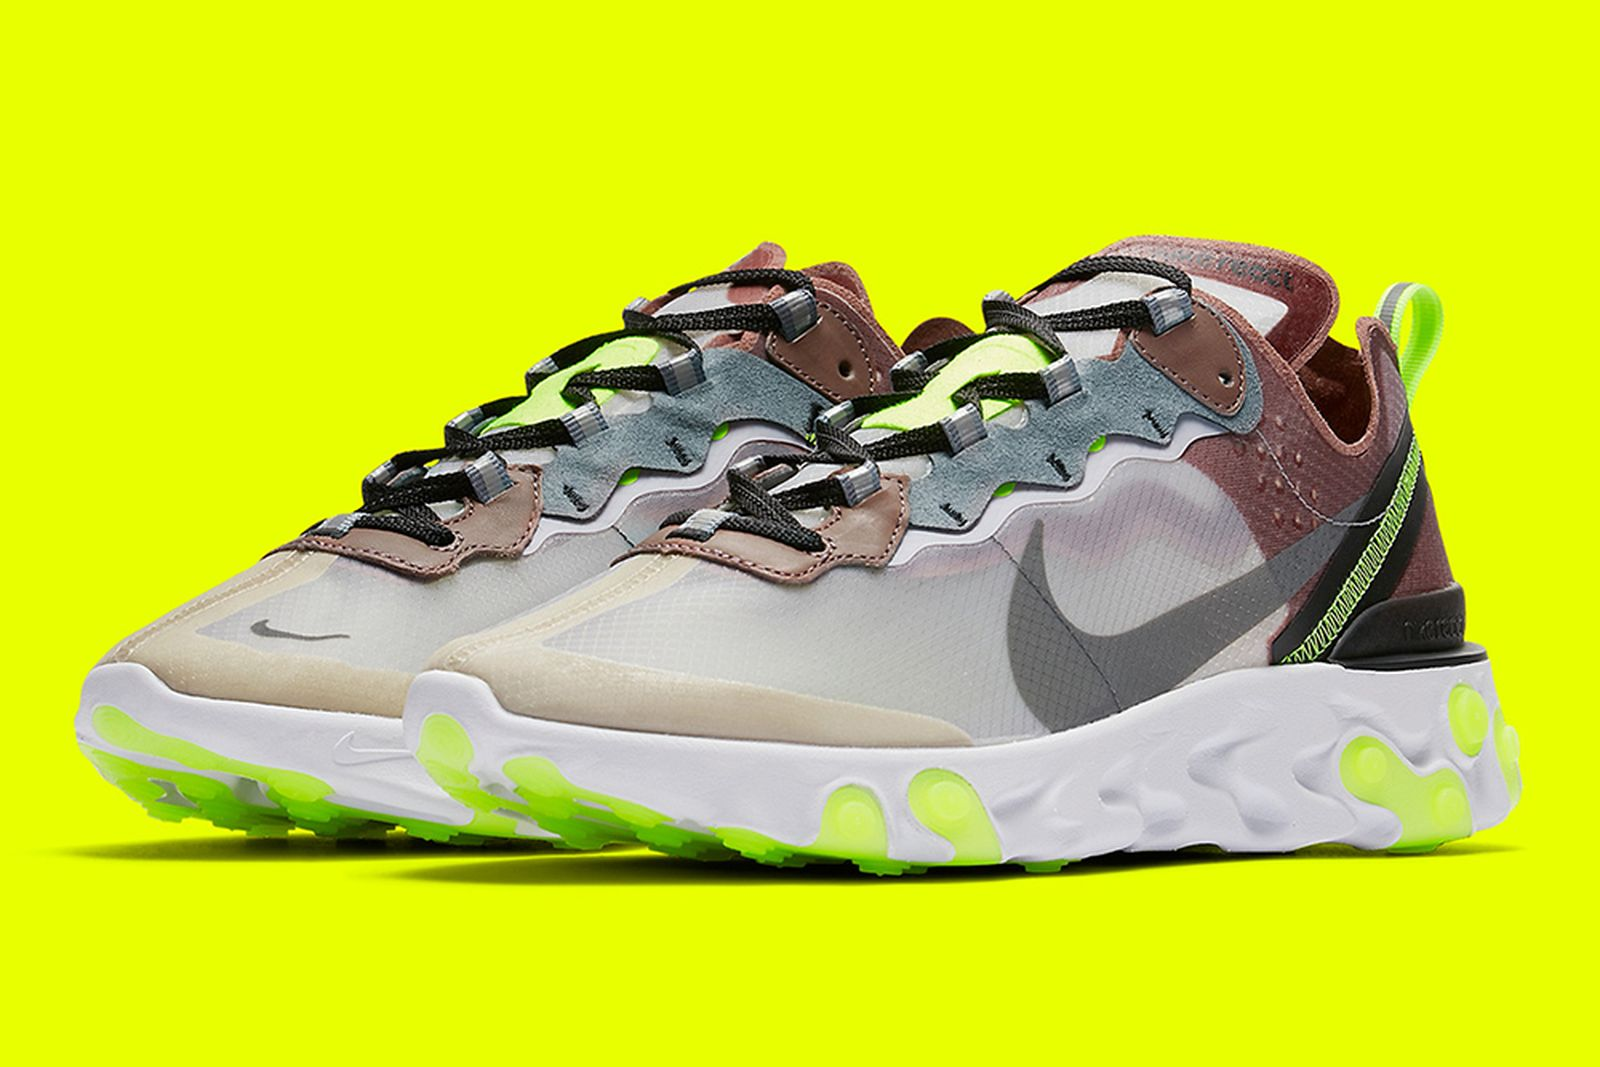 nike react element 87 new colorways 2019